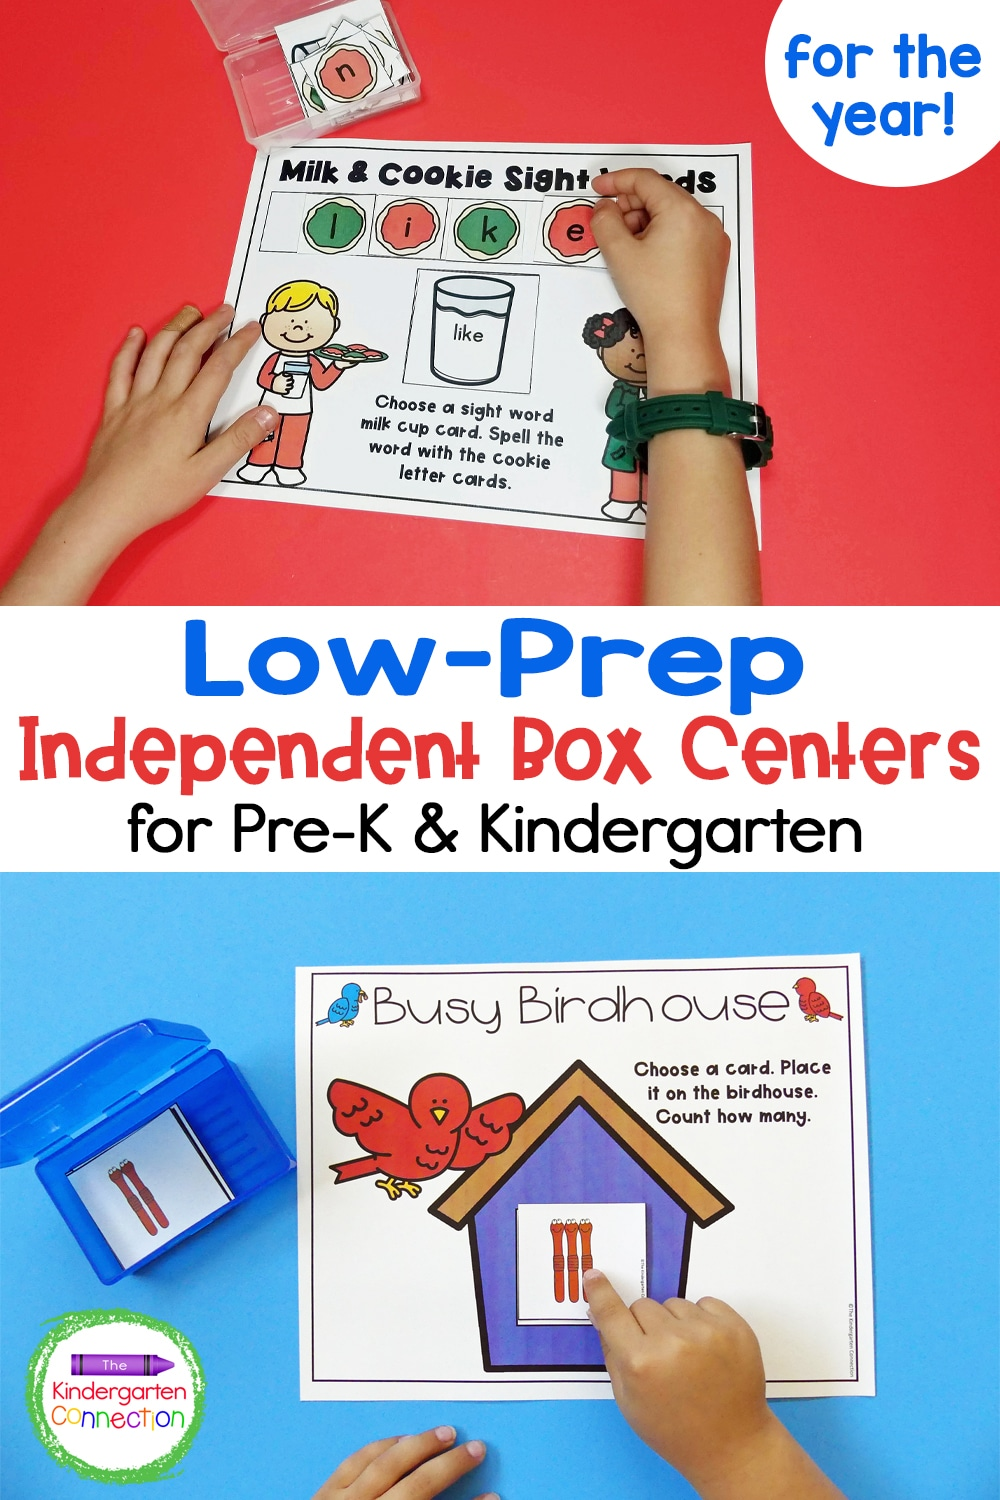 This amazing bundle of box centers will give you Low-Prep Independent Box Centers for Pre-K & Kindergarten for the whole year!